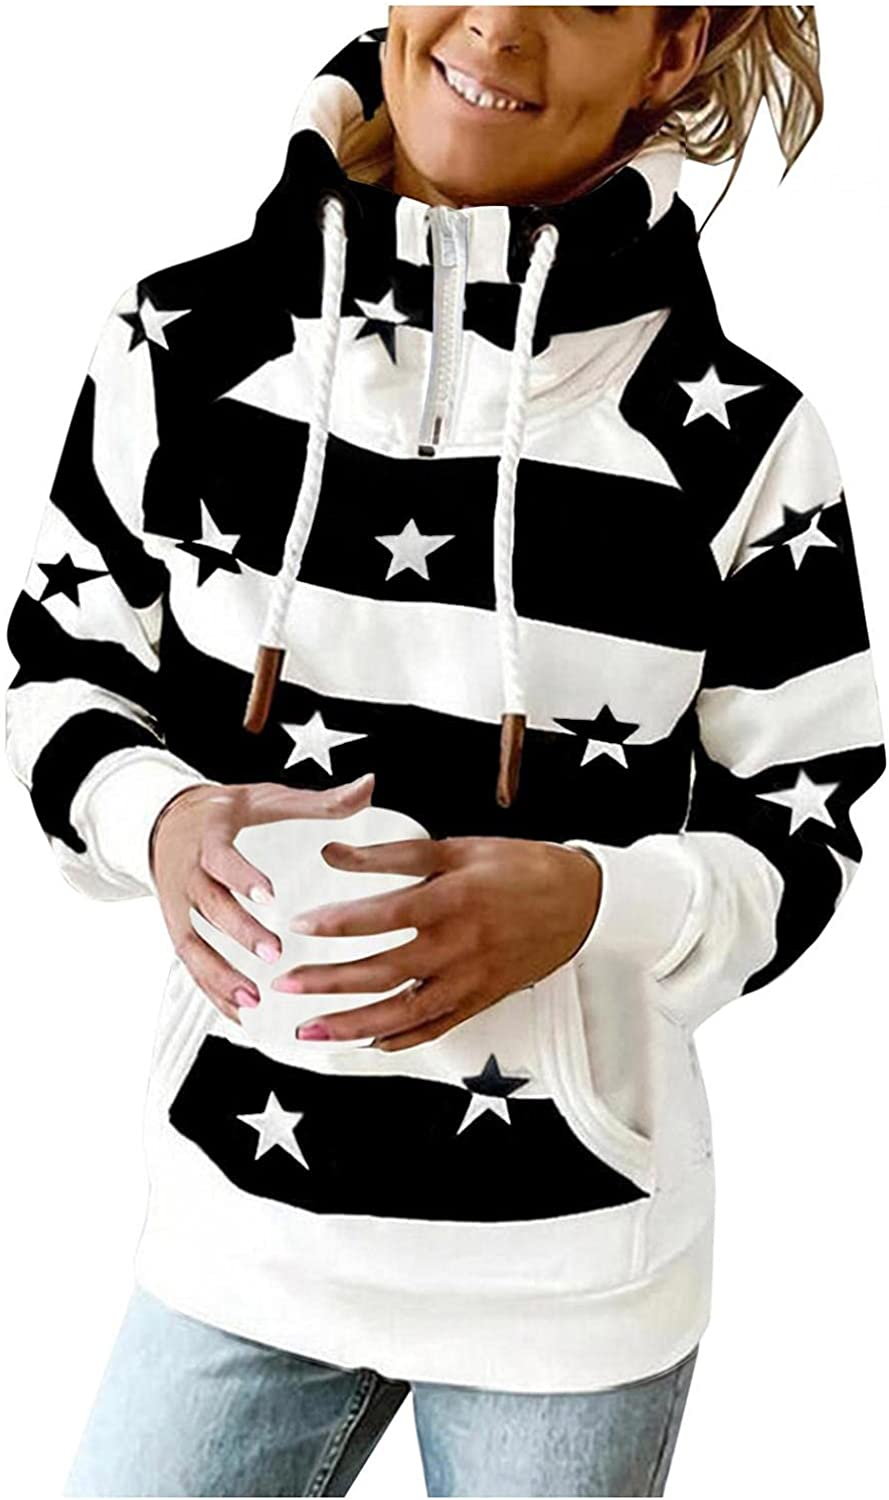 UOCUFY Hoodies for Women, Long Sleeve Hooded Sweatshirts for Women Casual Lightweight 1/4 Zipper Striped Pullover Tops